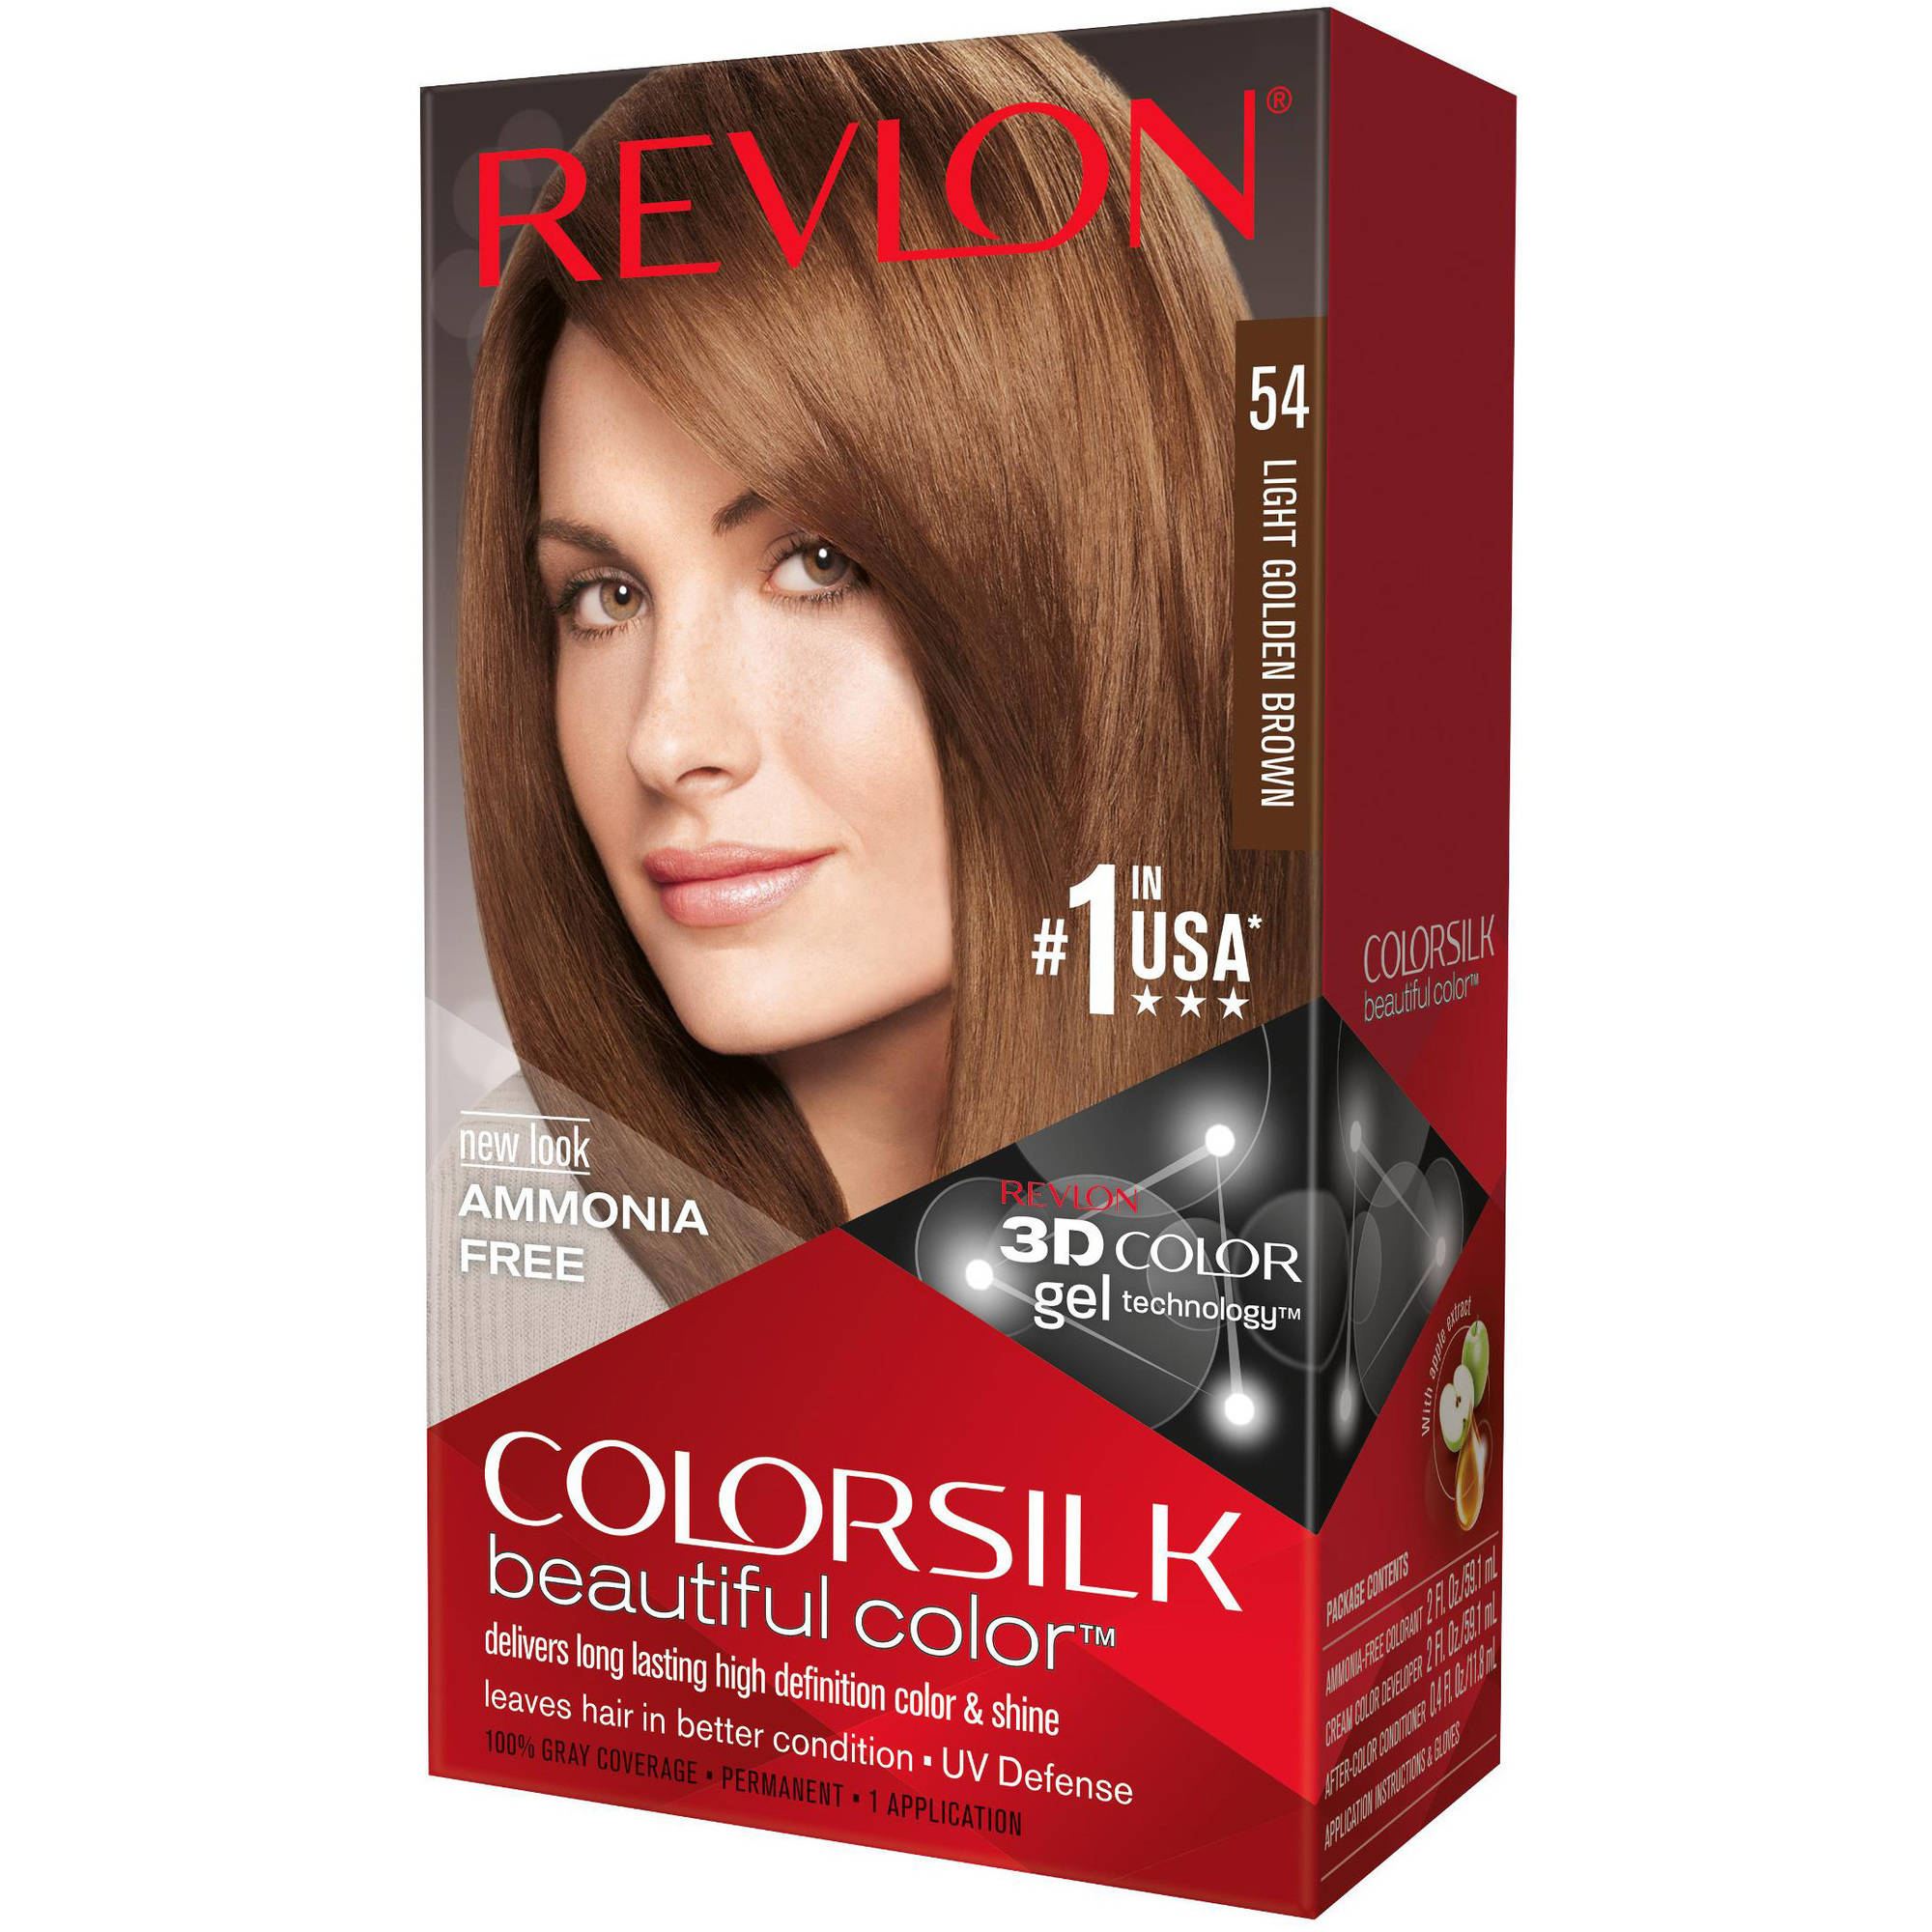 revlon colorsilk beautiful color permanent hair color 54